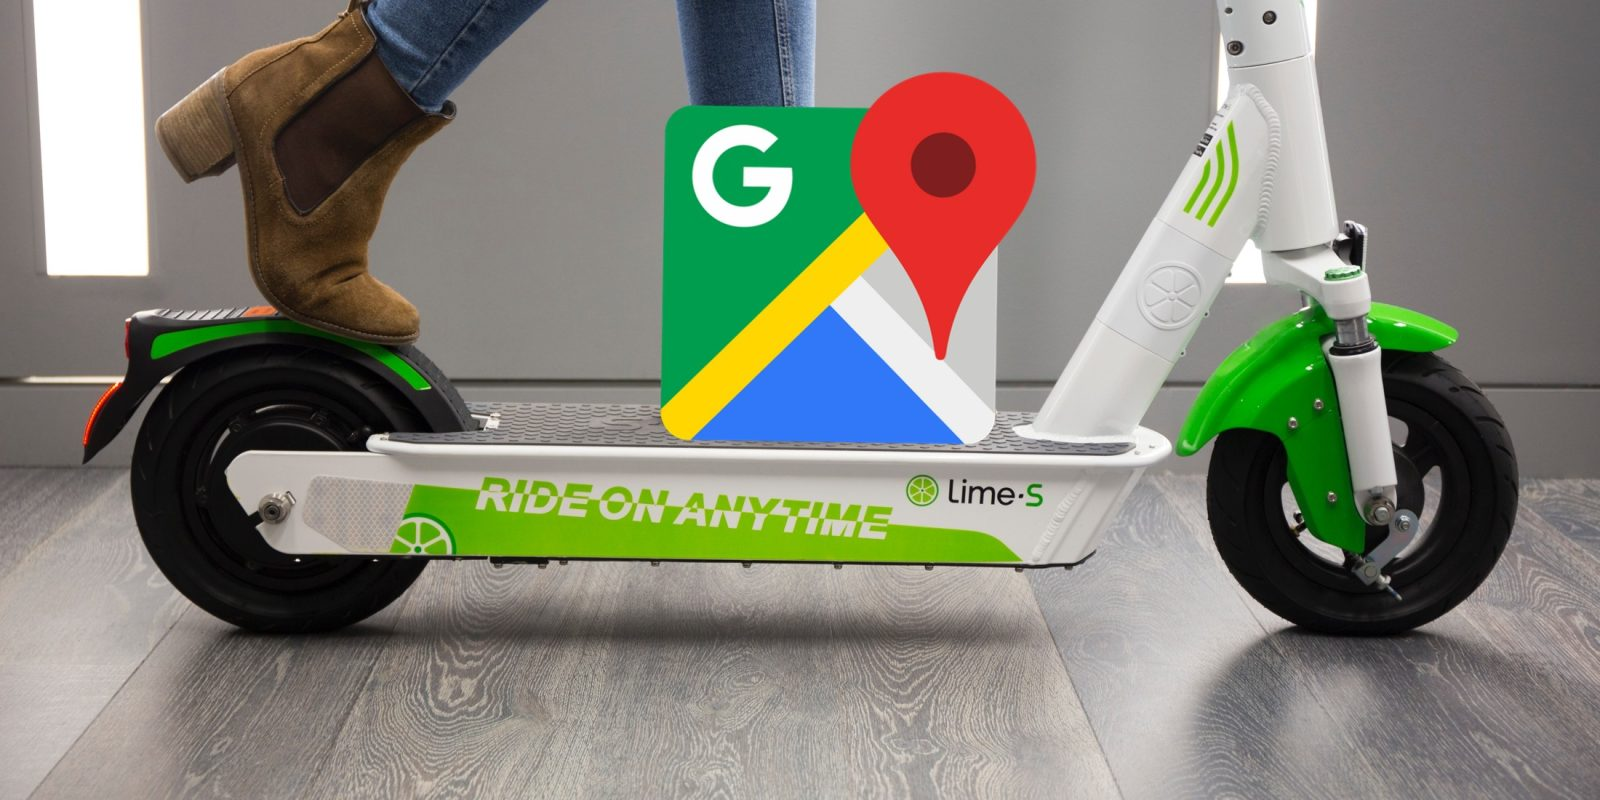 Google Maps Now Shows Lime Bikes & Scooters In Over 80 New Cities